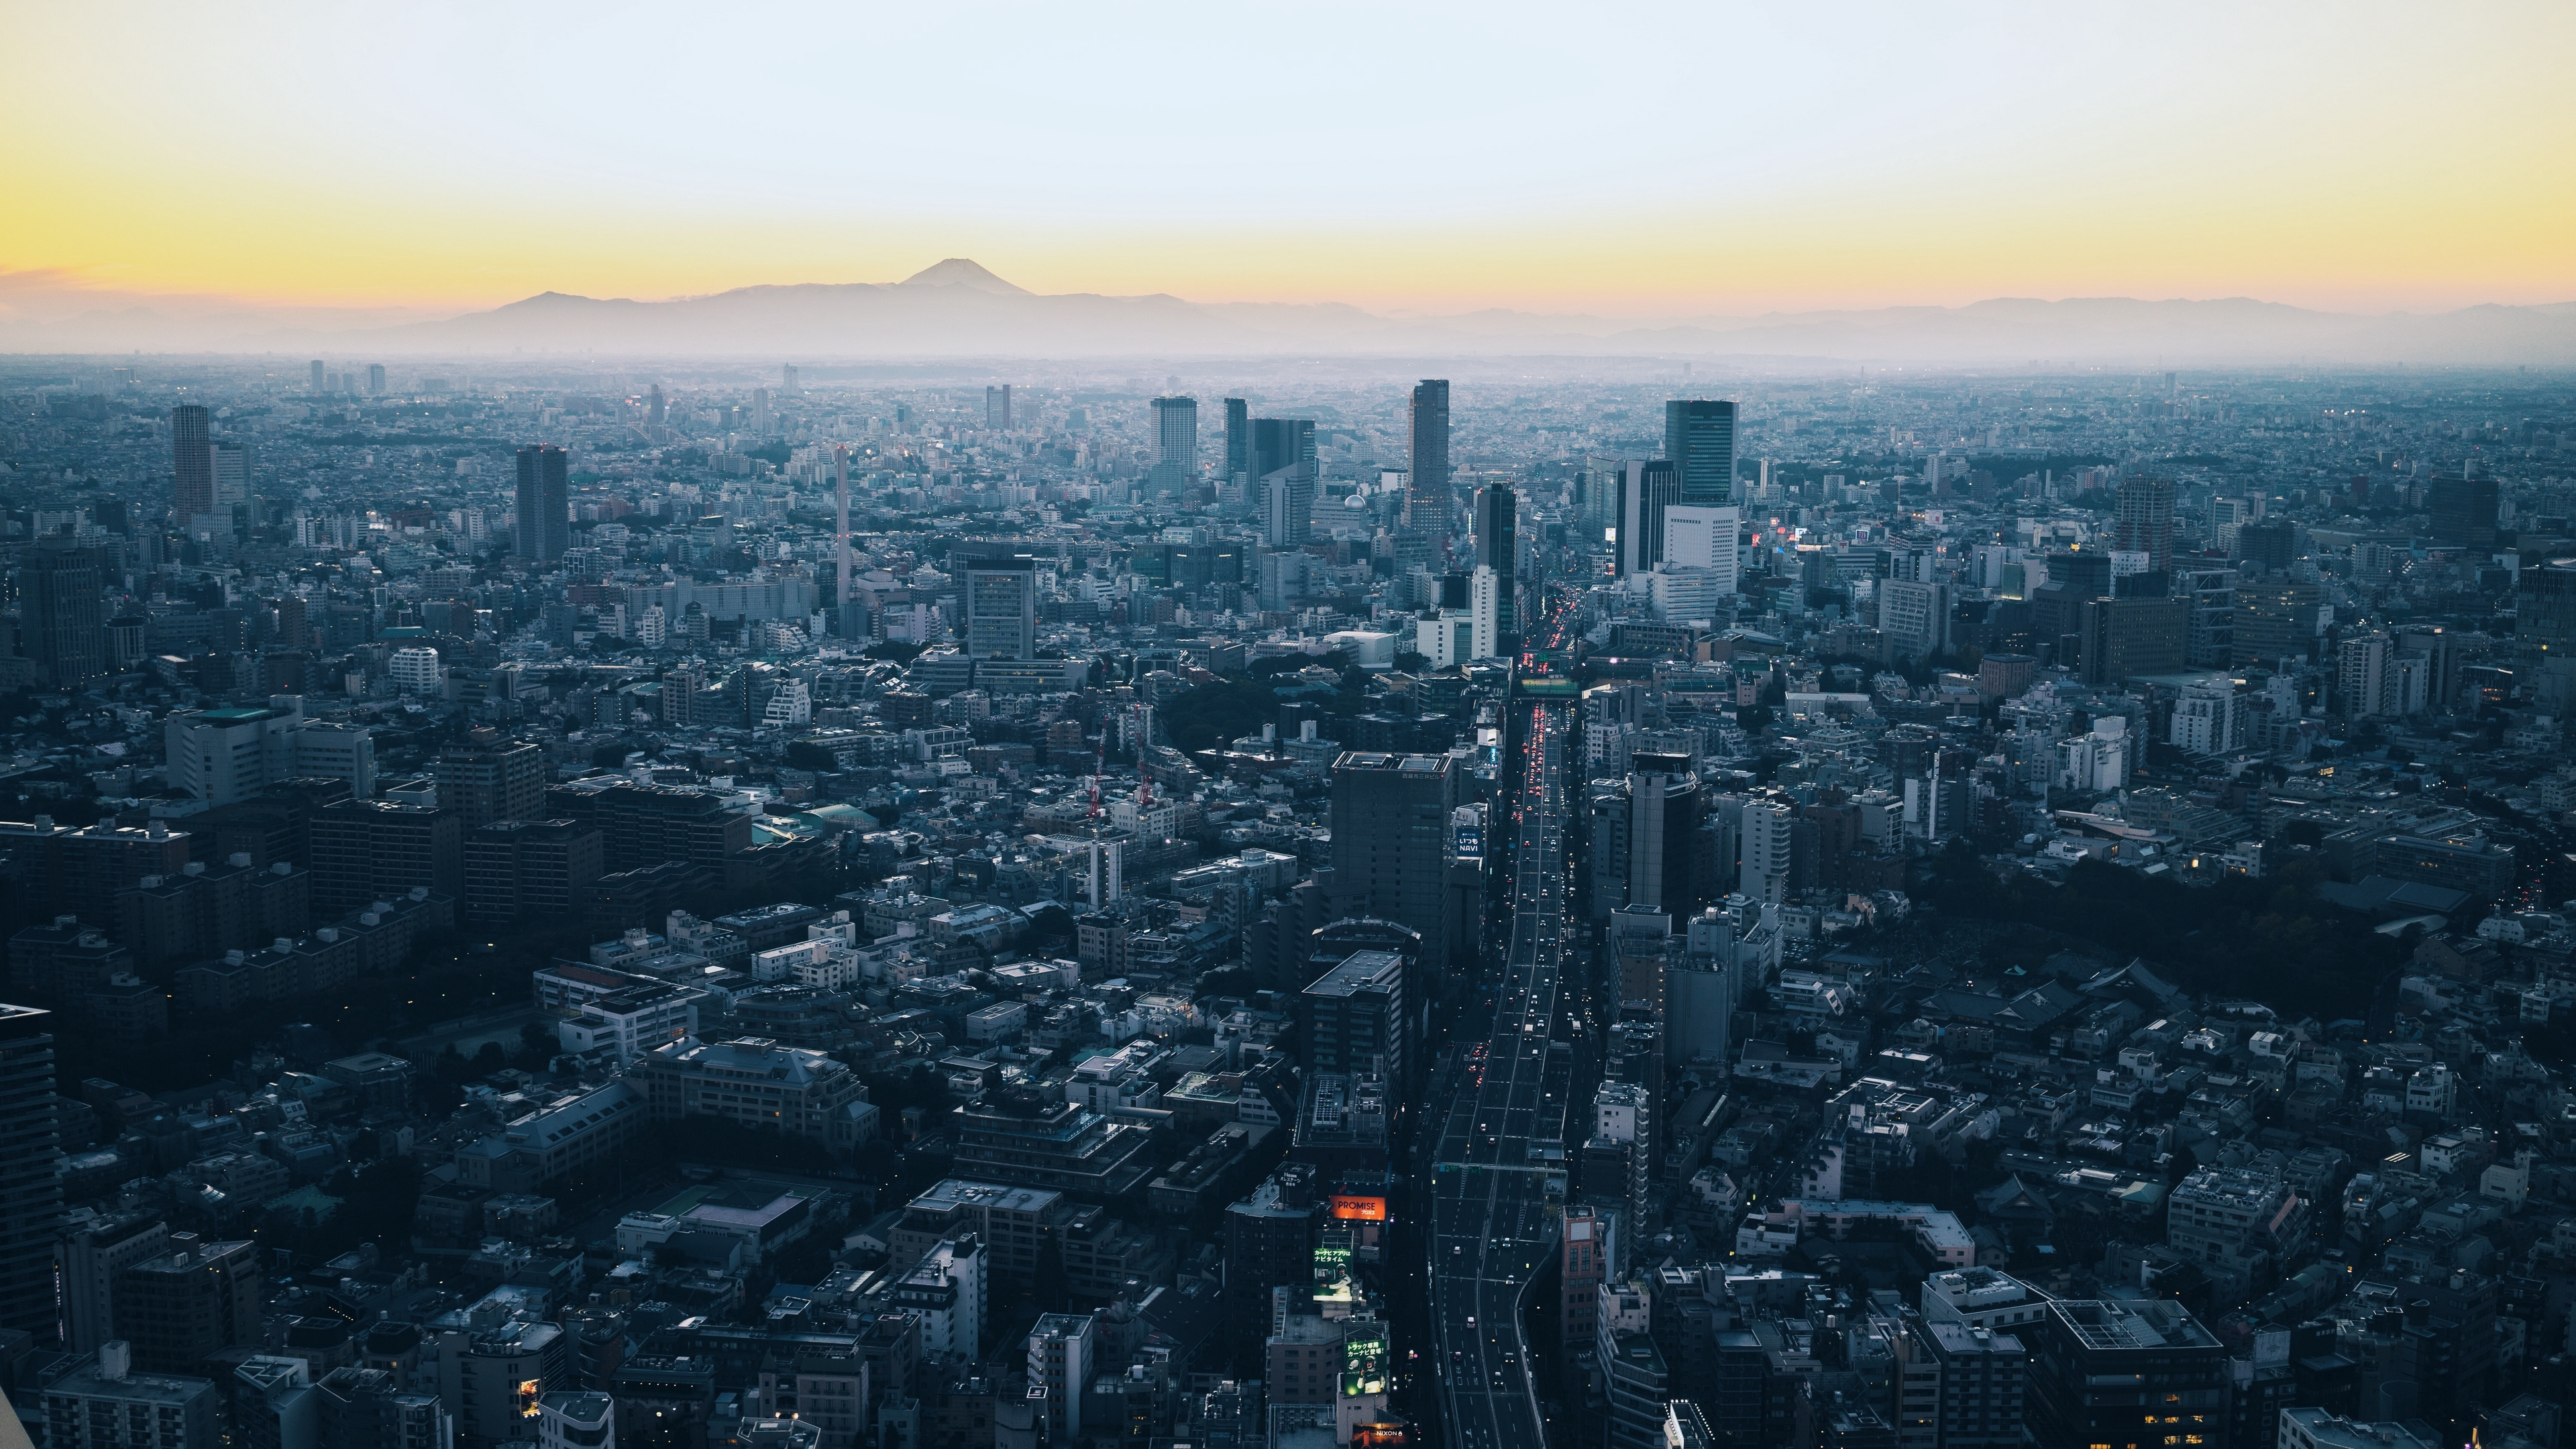 Wallpaper Minato Japan Skyscrapers City View From 4k